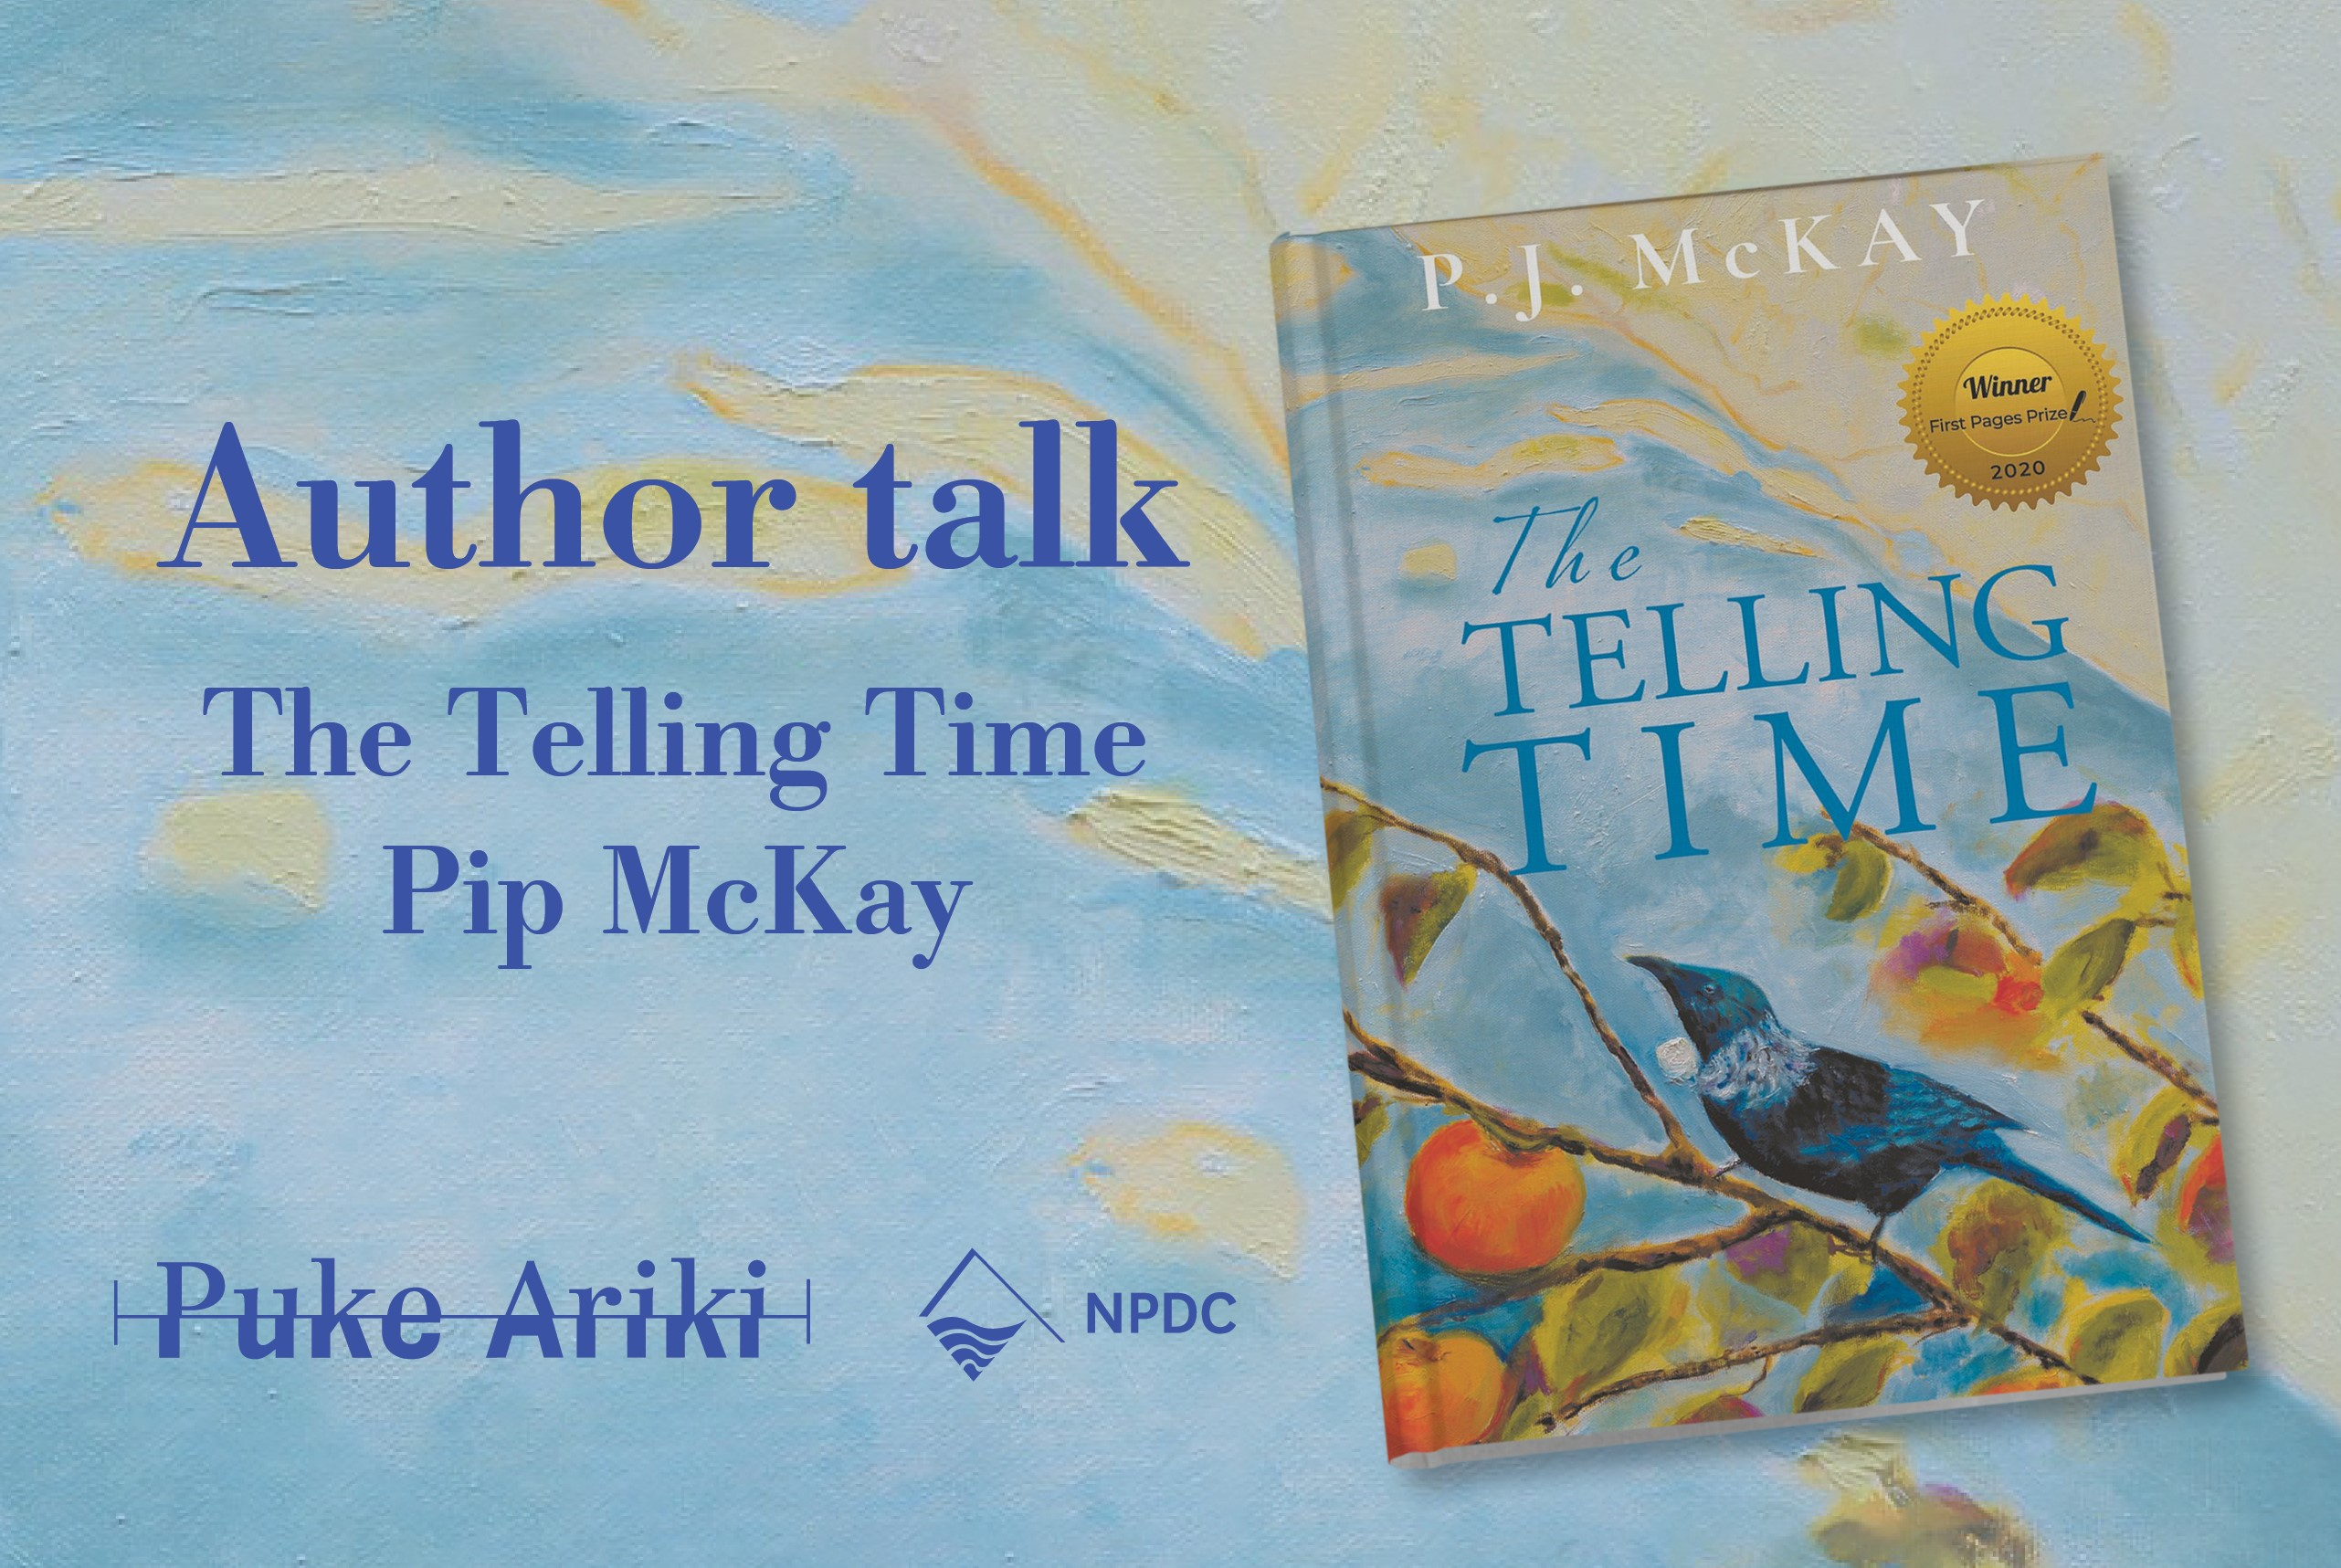 Author Talk with Pip McKay